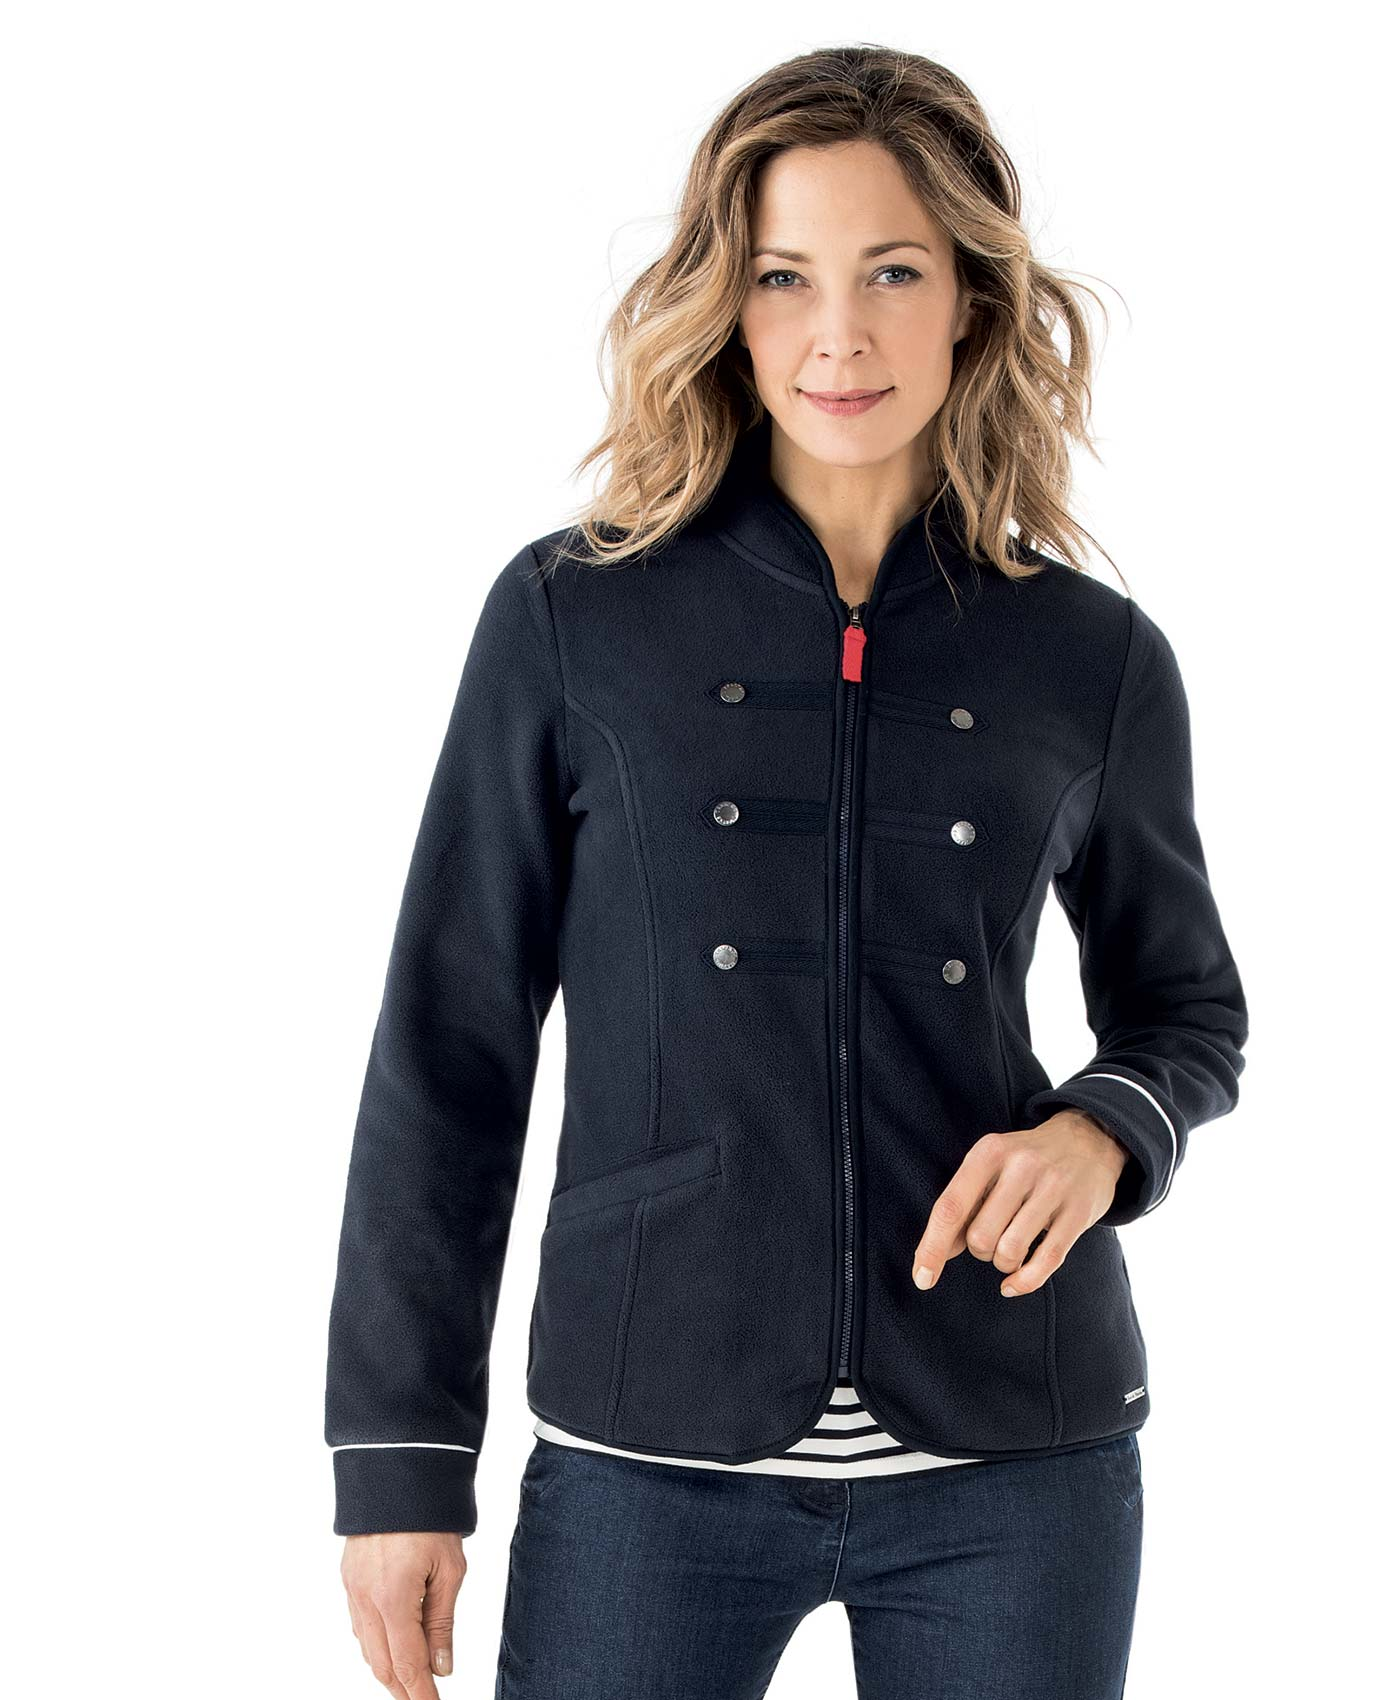 veste polaire femme marine veste parka manteau mode femme terre de marins. Black Bedroom Furniture Sets. Home Design Ideas